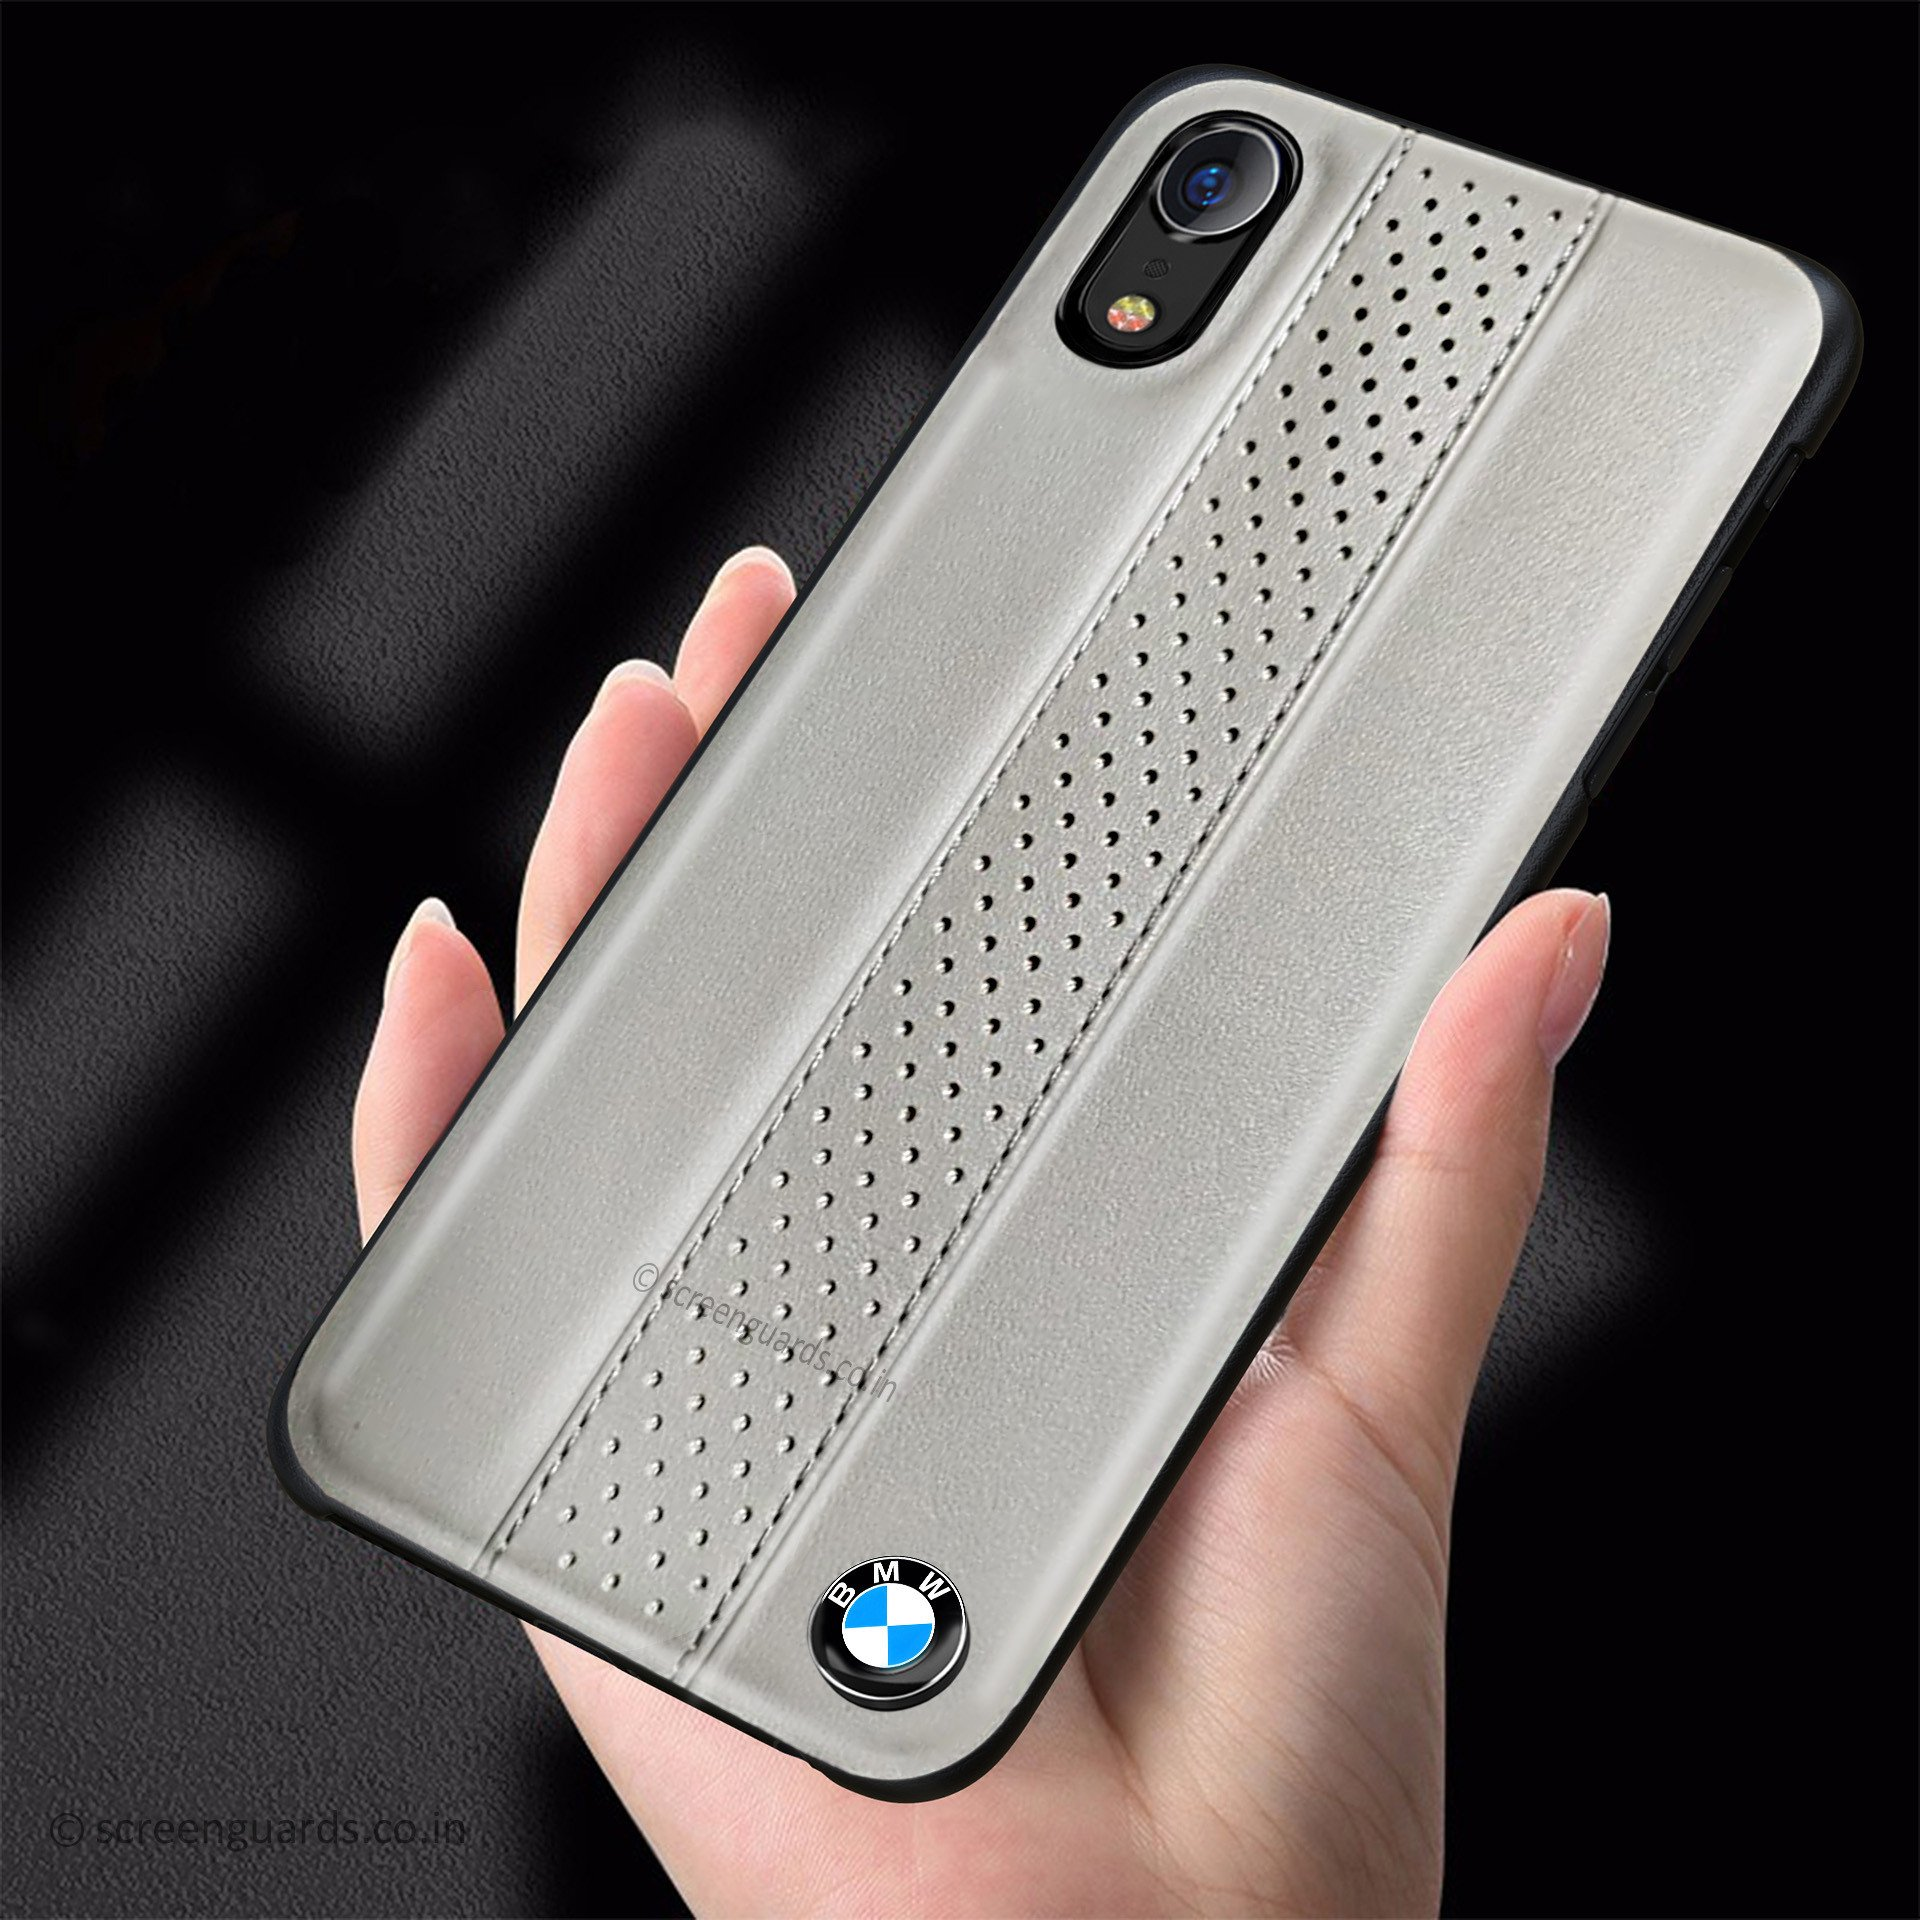 bmw iphone xr m2 competition freckled leather back case iphone xr apple mobile tablet